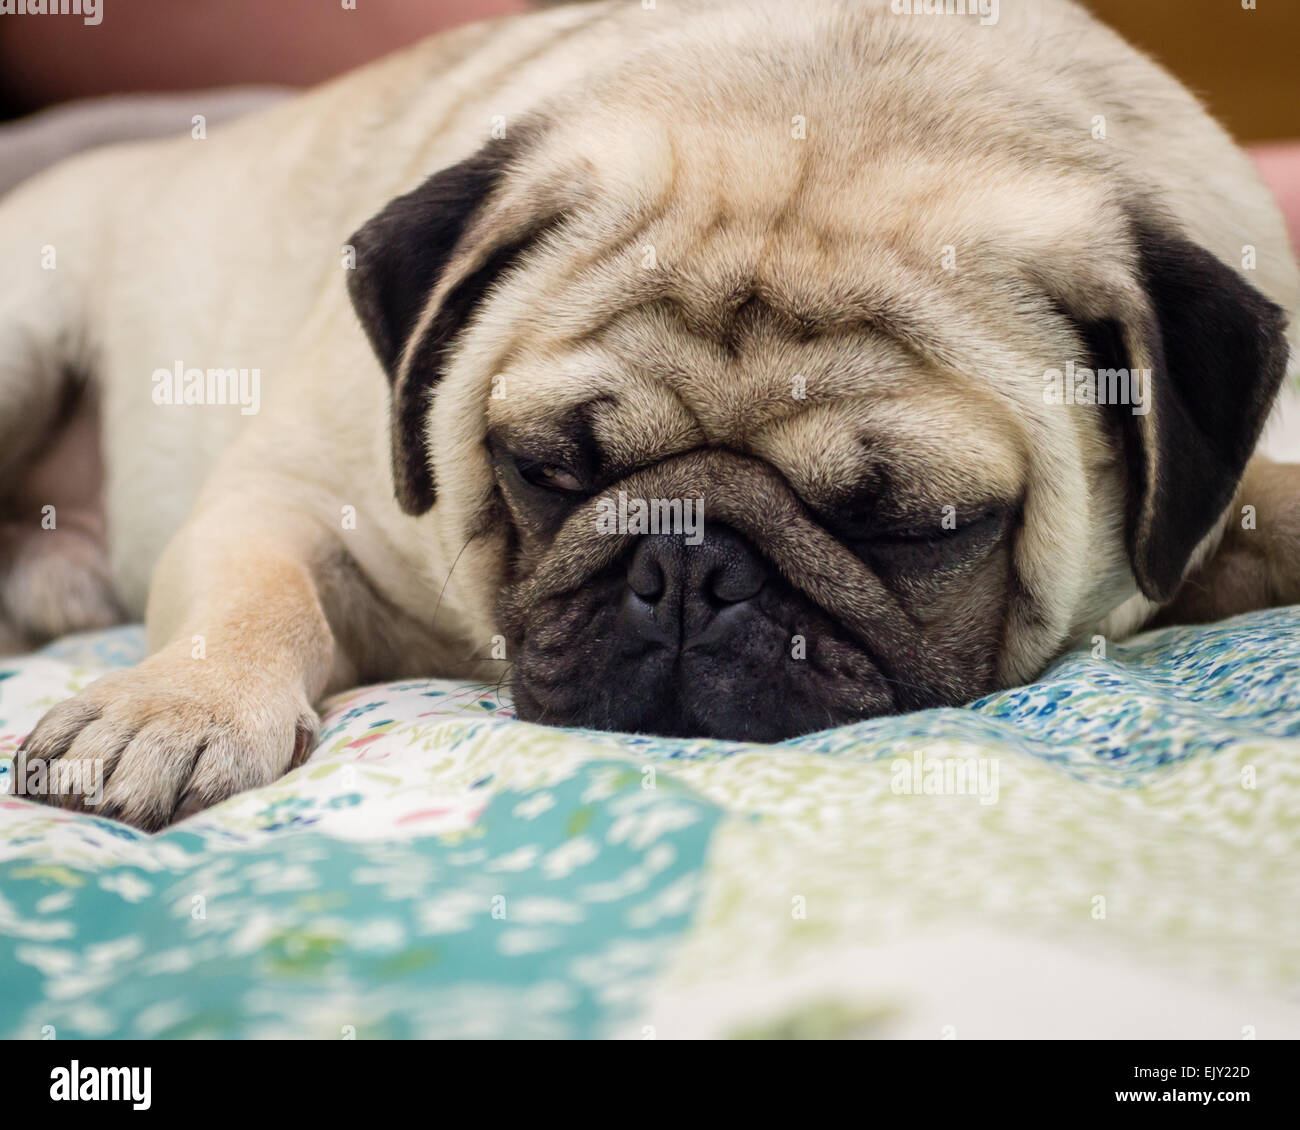 A Pug dog sleeping on a bed - Stock Image